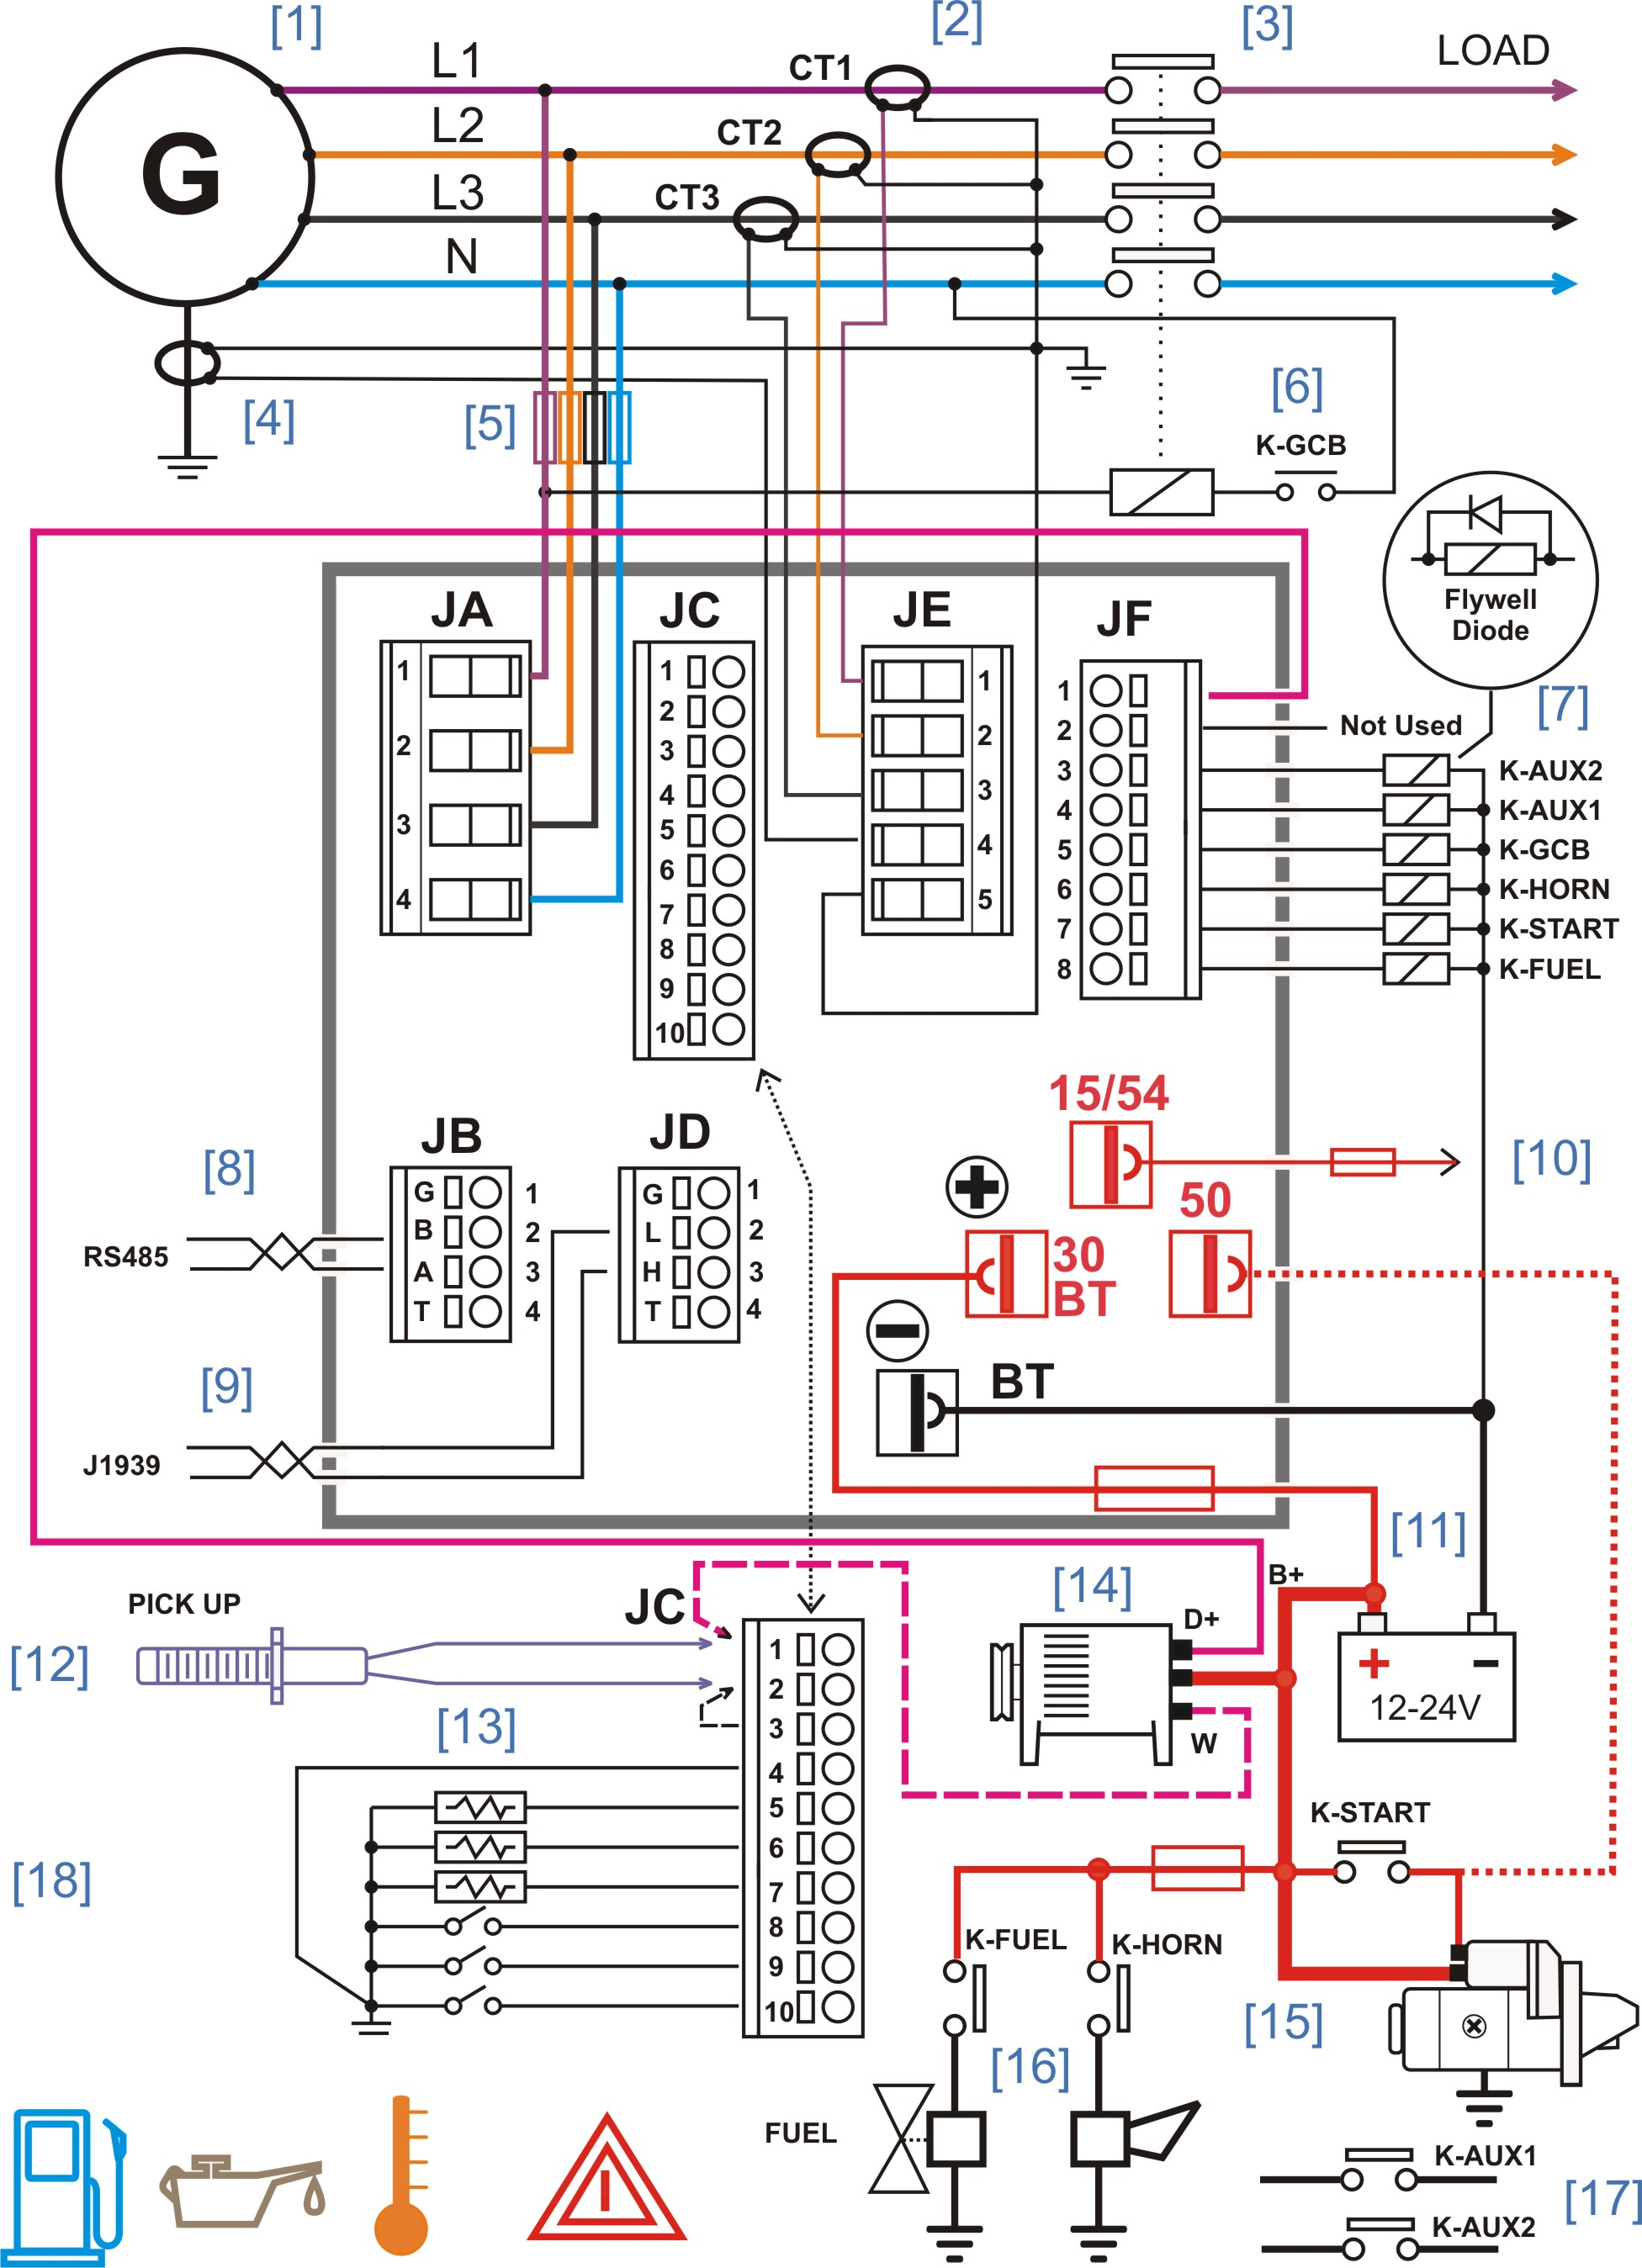 hight resolution of wiring diagram starter 6500gp generac wiring diagram imp generac rtf 3 phase transfer switch wiring diagram